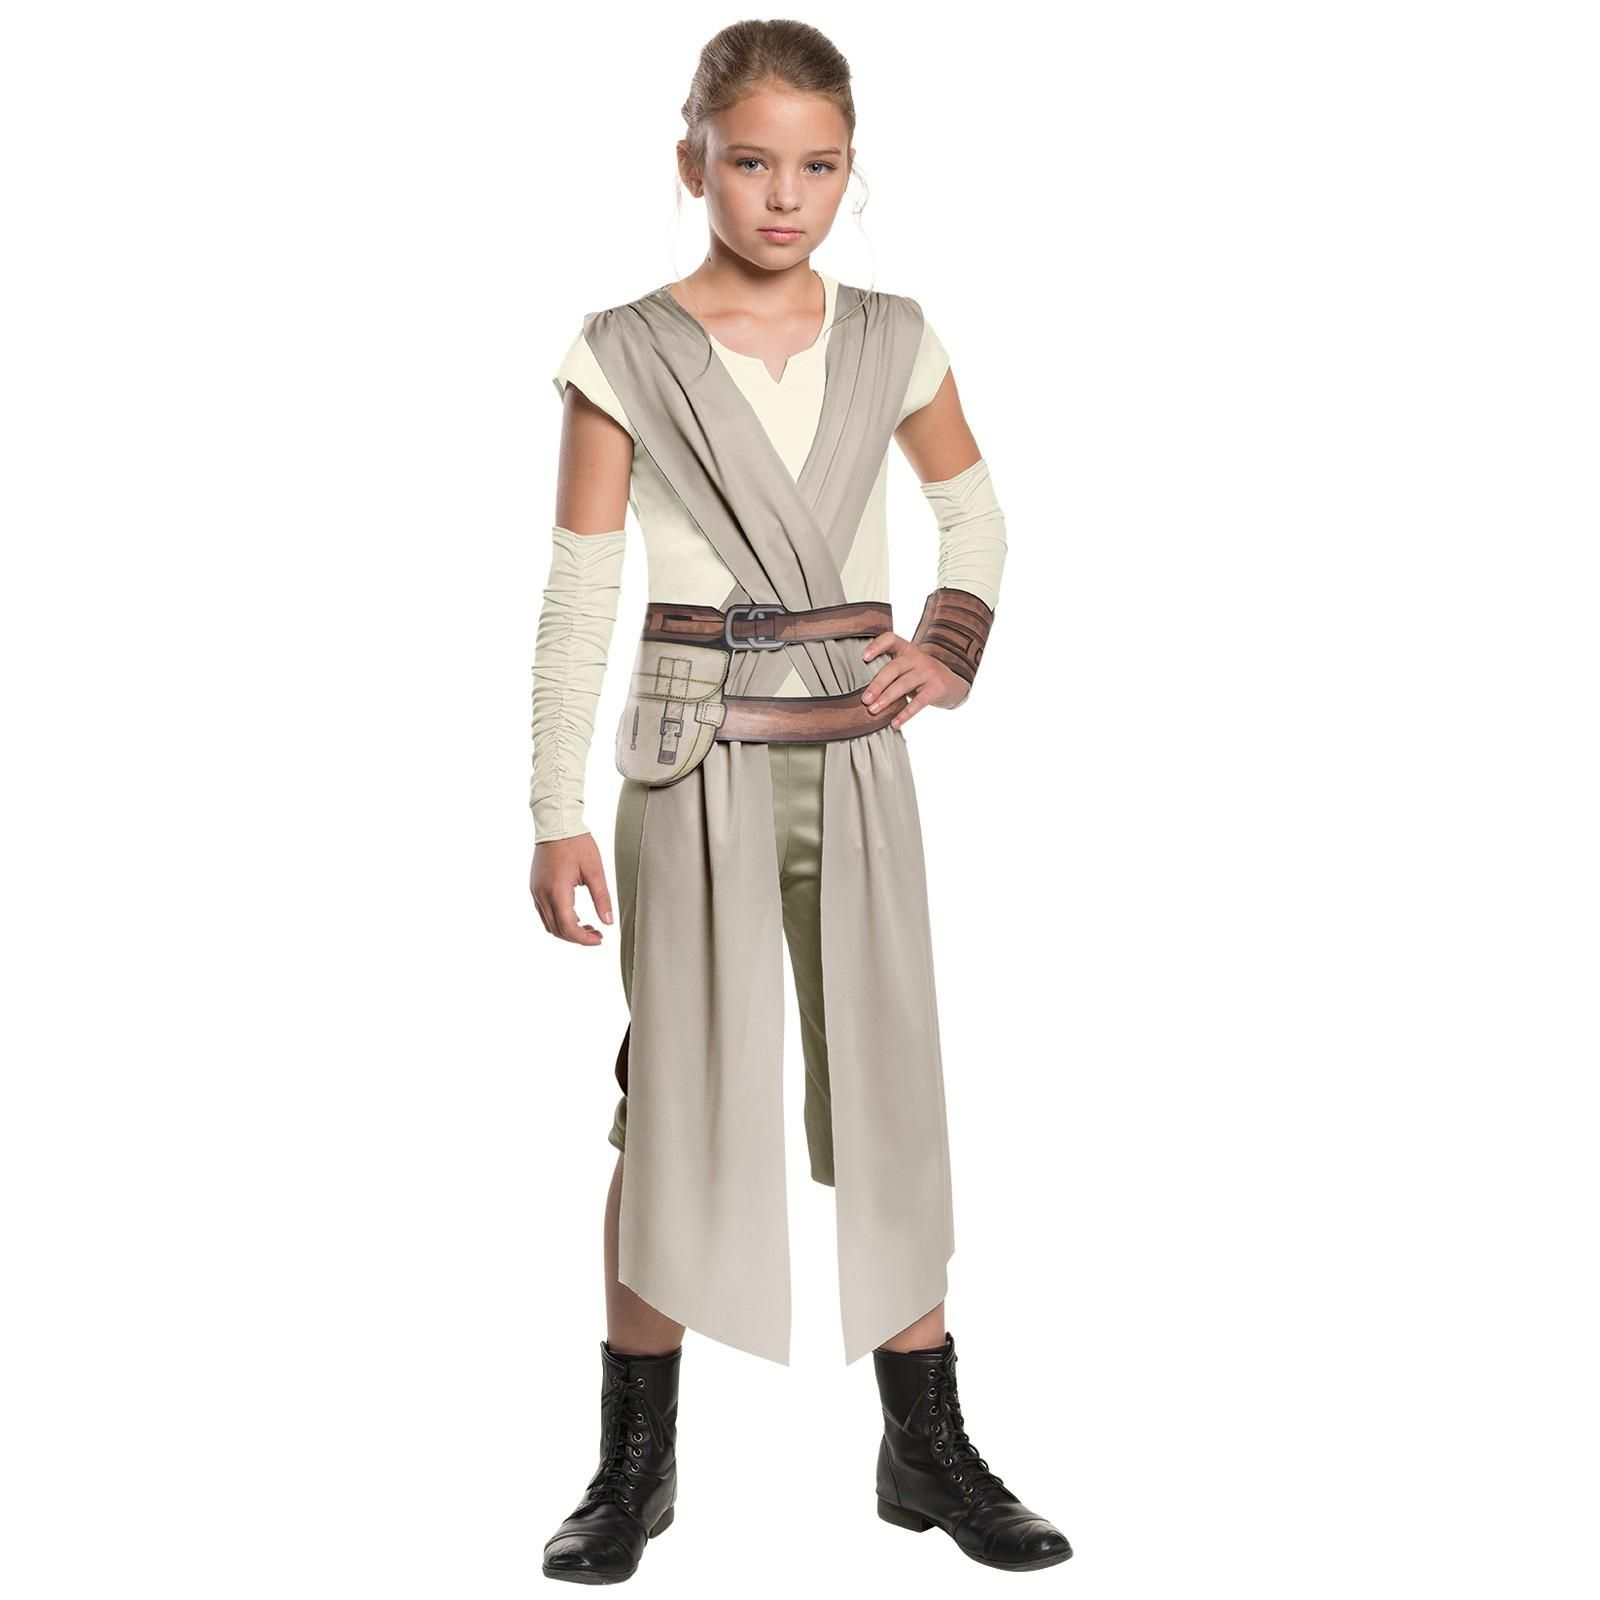 Star Wars: The Force Awakens - Classic Rey Costume For Girls ...